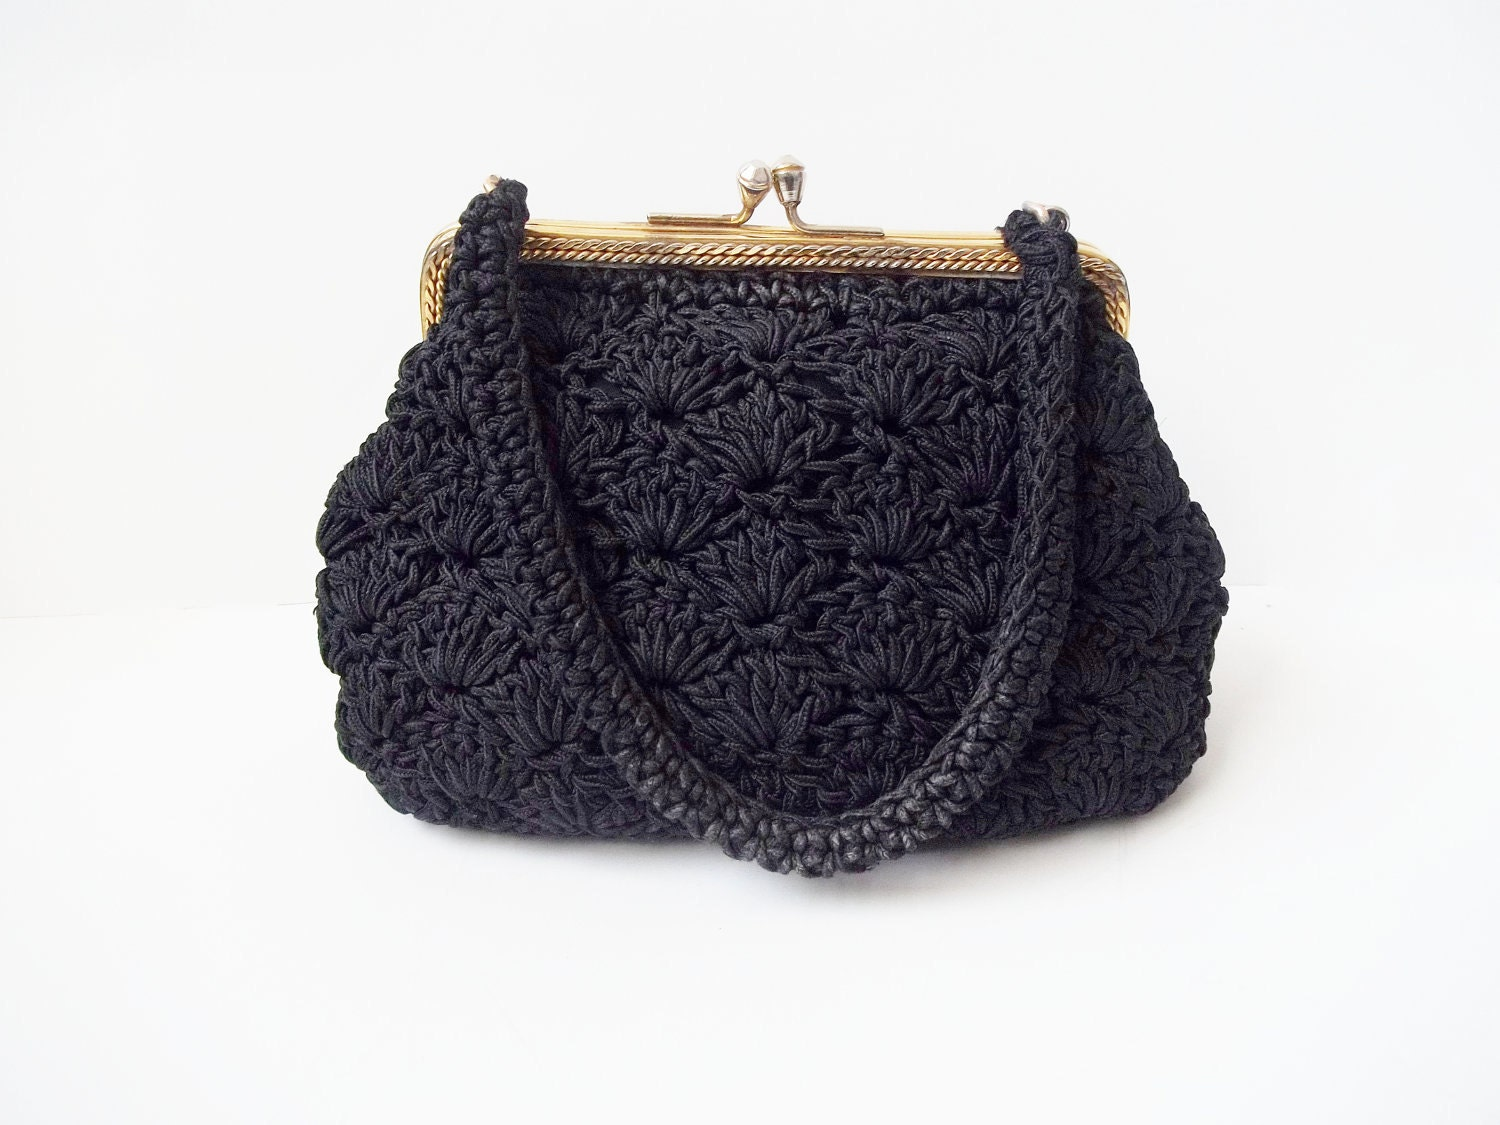 Vintage 1950s Black Crochet Frame Evening Bag by ...